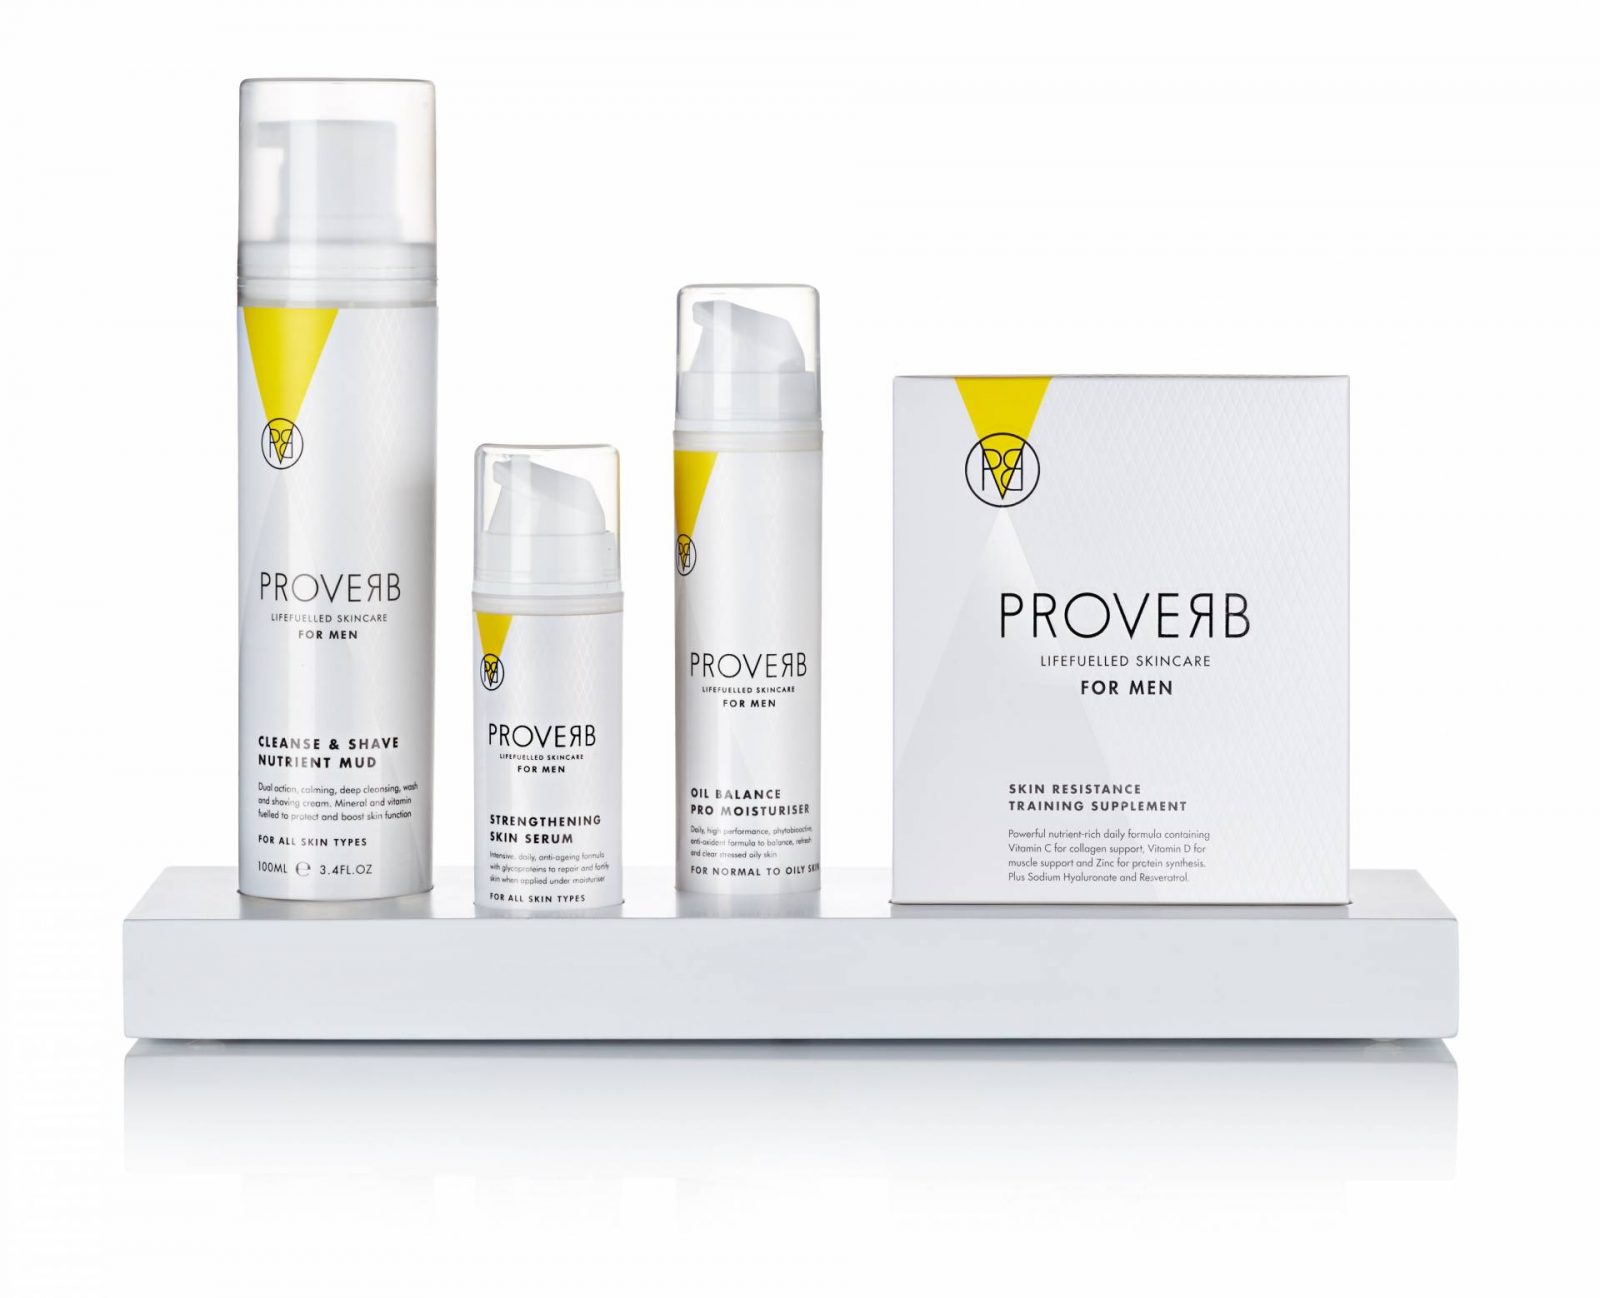 Foretelling your future – Proverb Grooming range